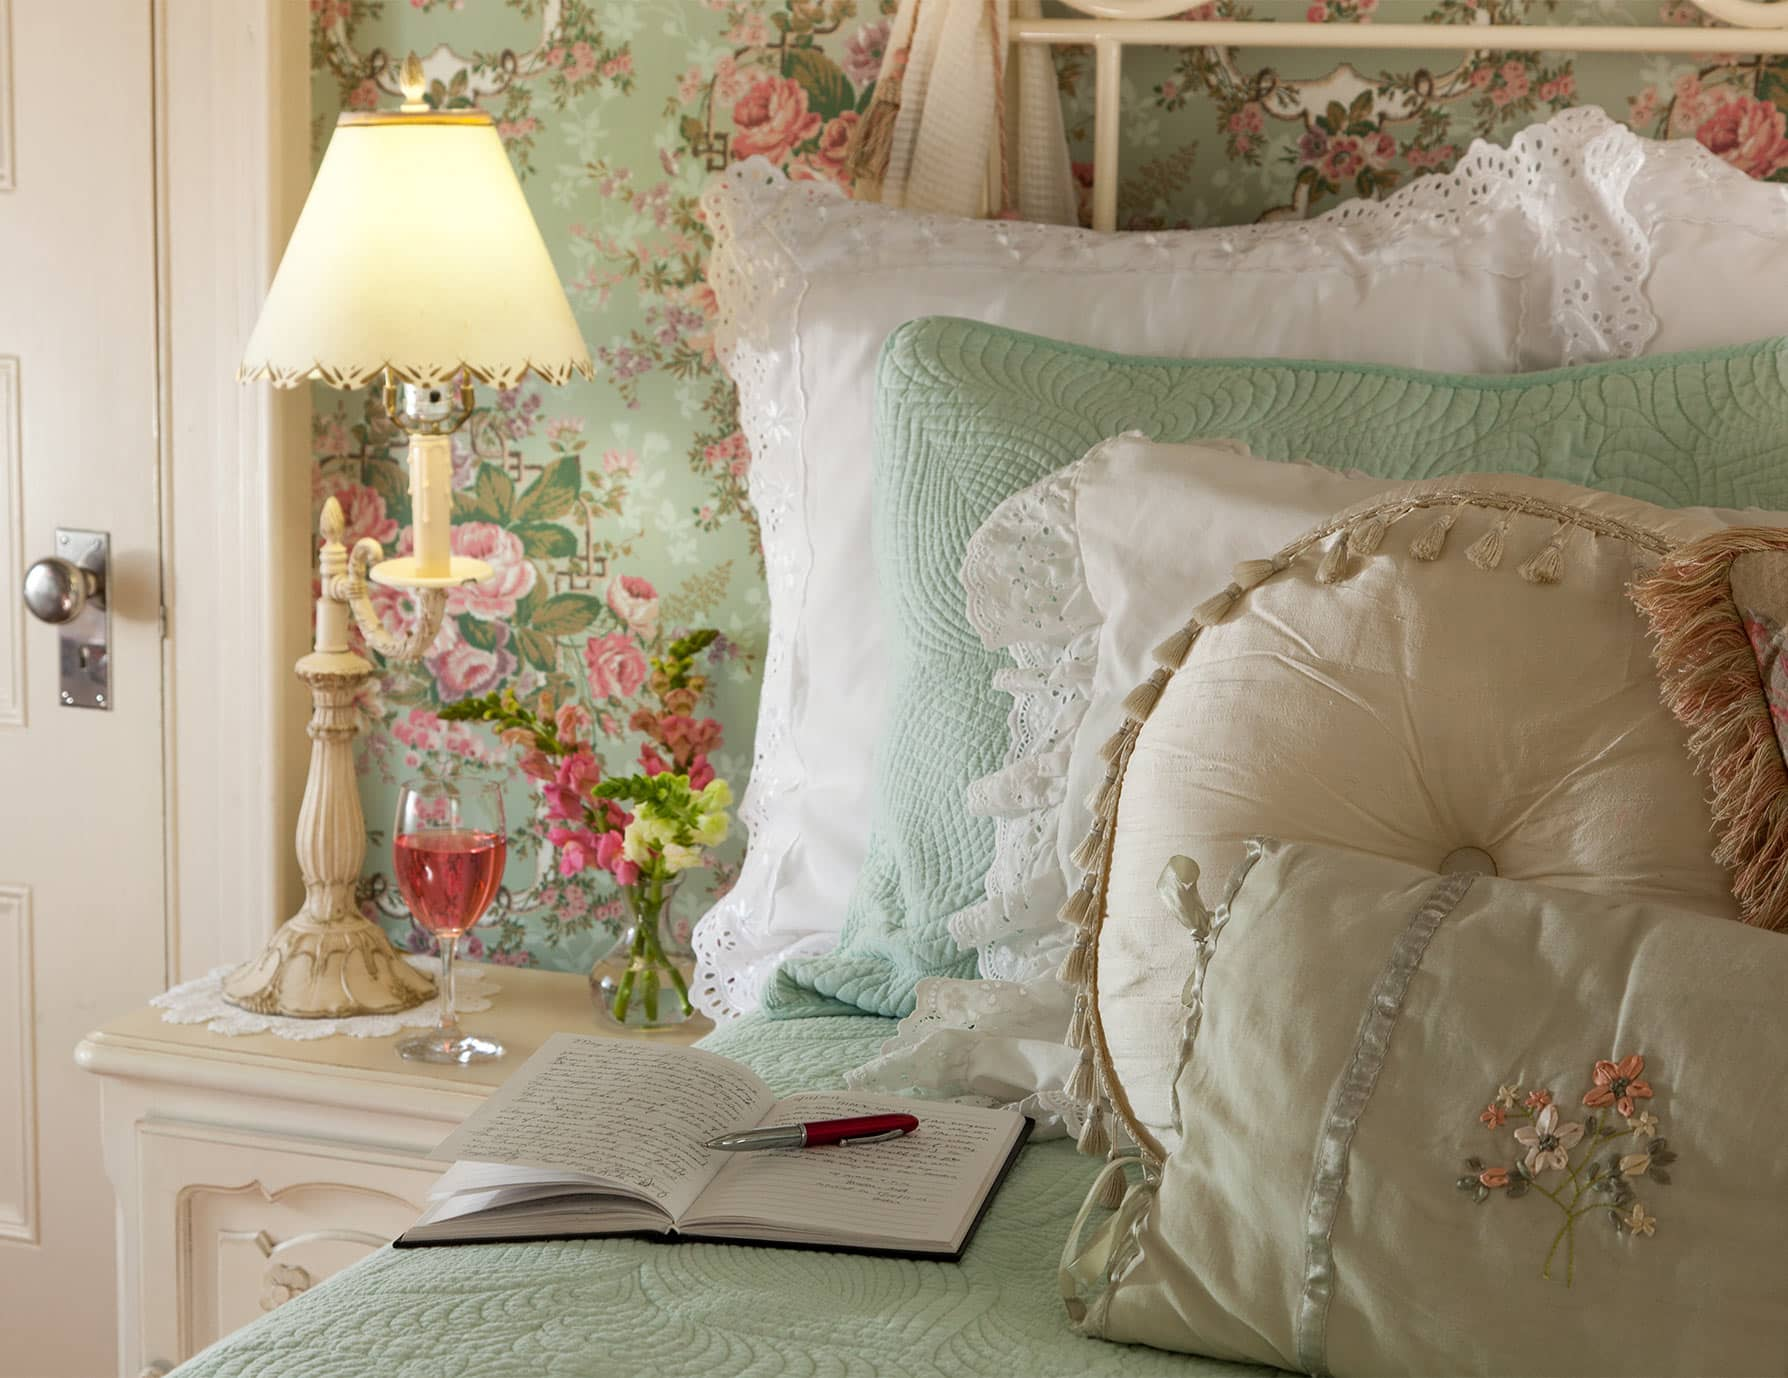 Lamp and wine on nightstand by bed with many pillows and journal